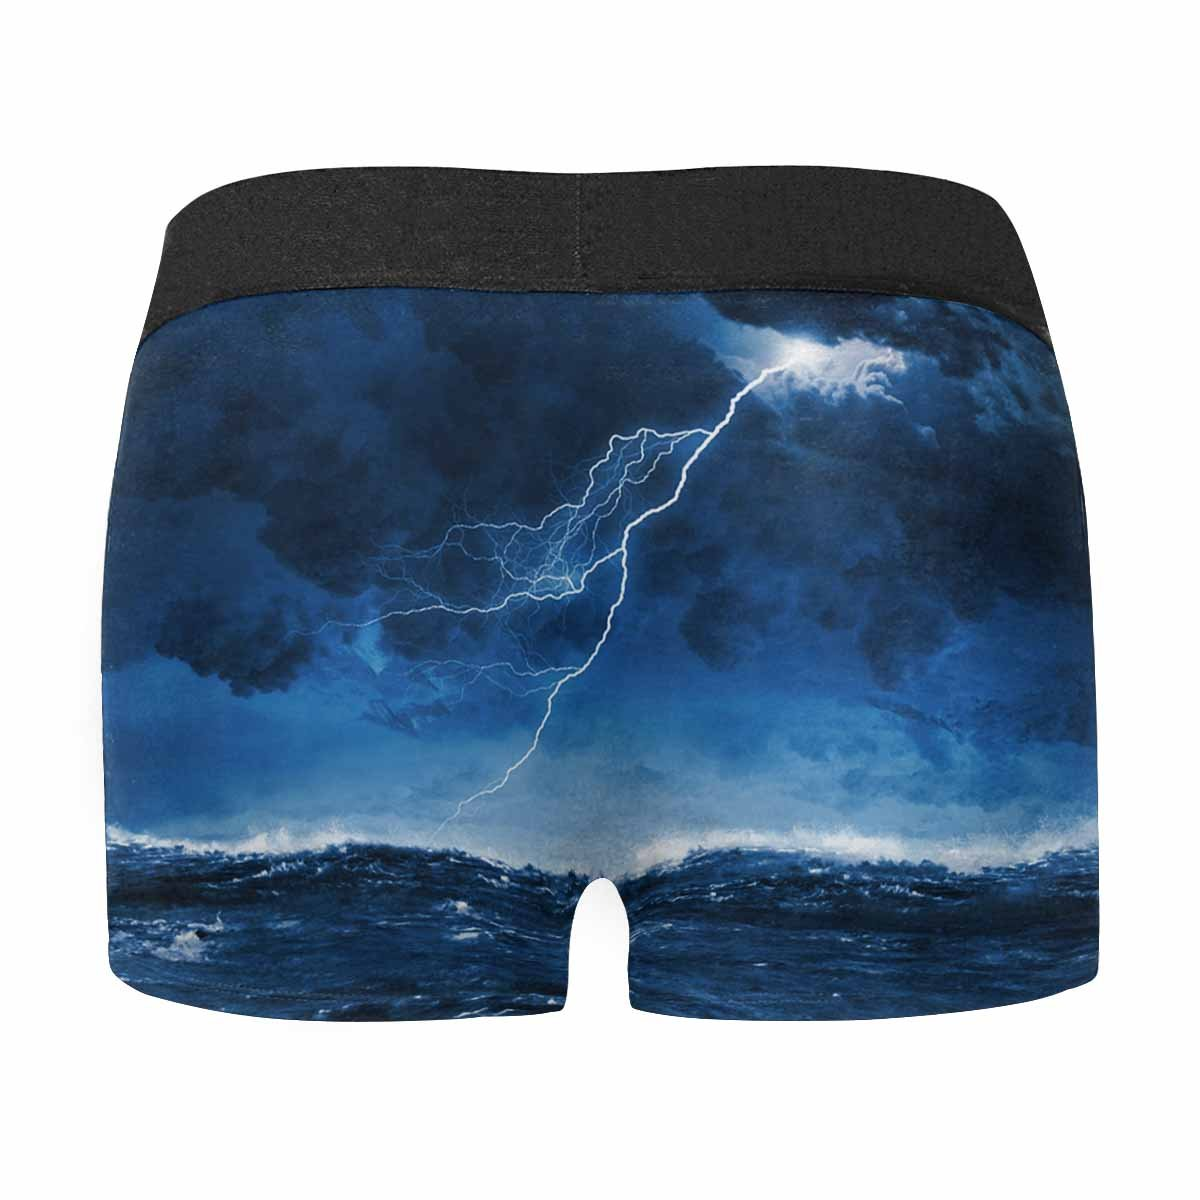 XS-3XL INTERESTPRINT Custom Mens All-Over Print Boxer Briefs Image of Night Stormy Sea with Big Waves and Lightning